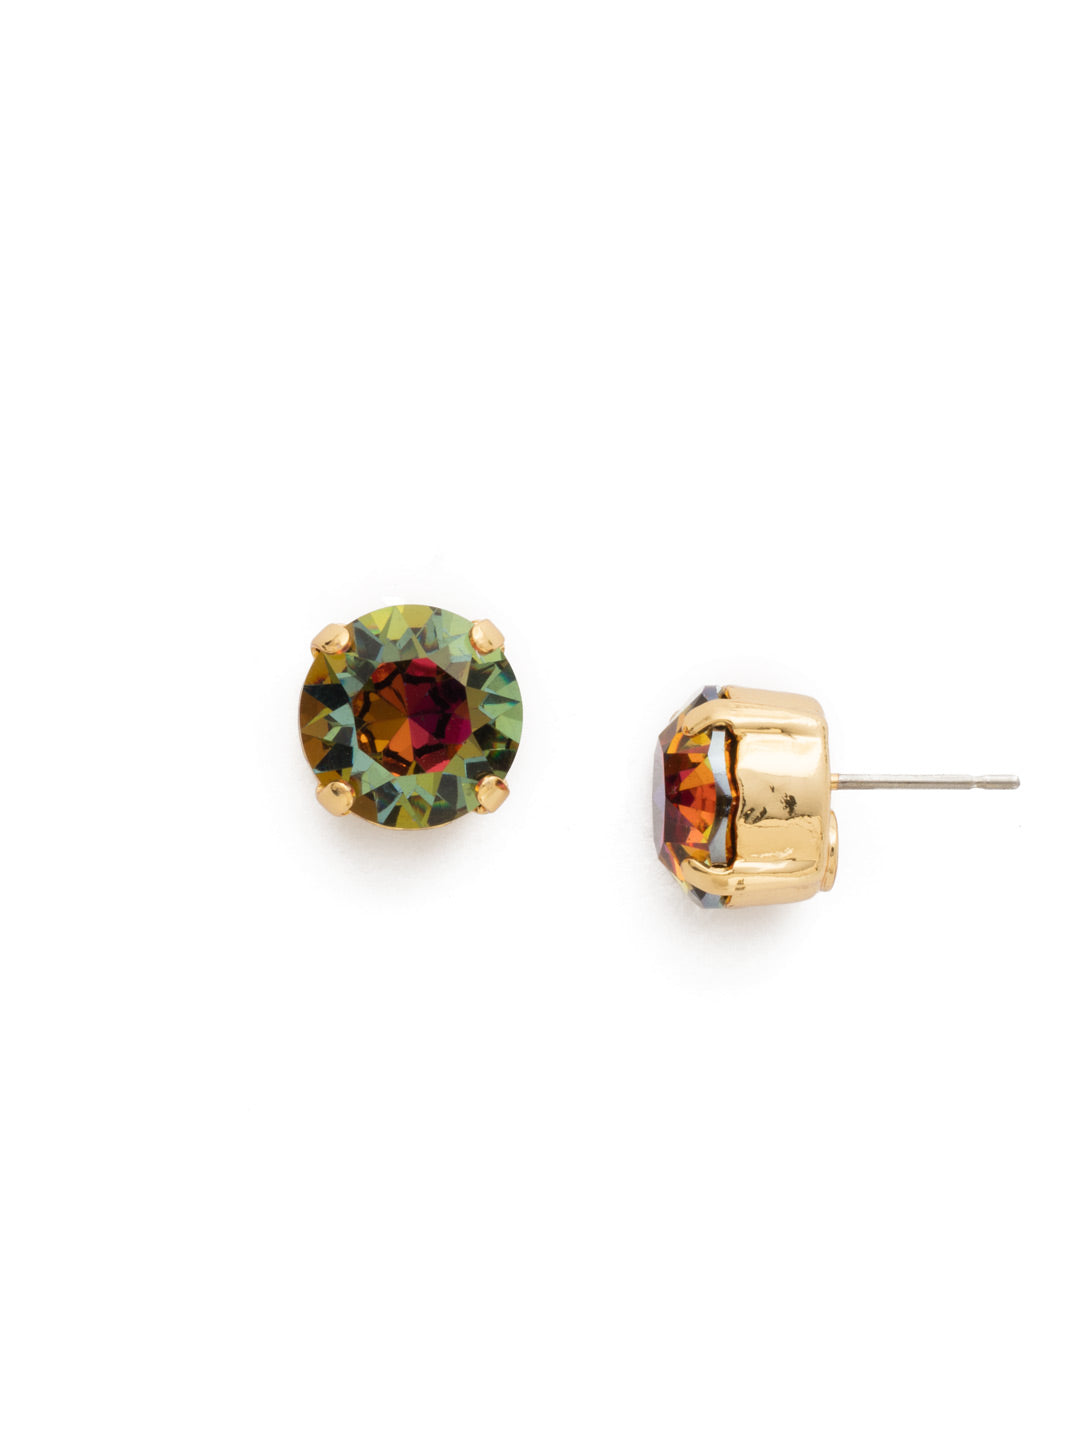 Round Crystal Stud Earrings - ECM14BGVO